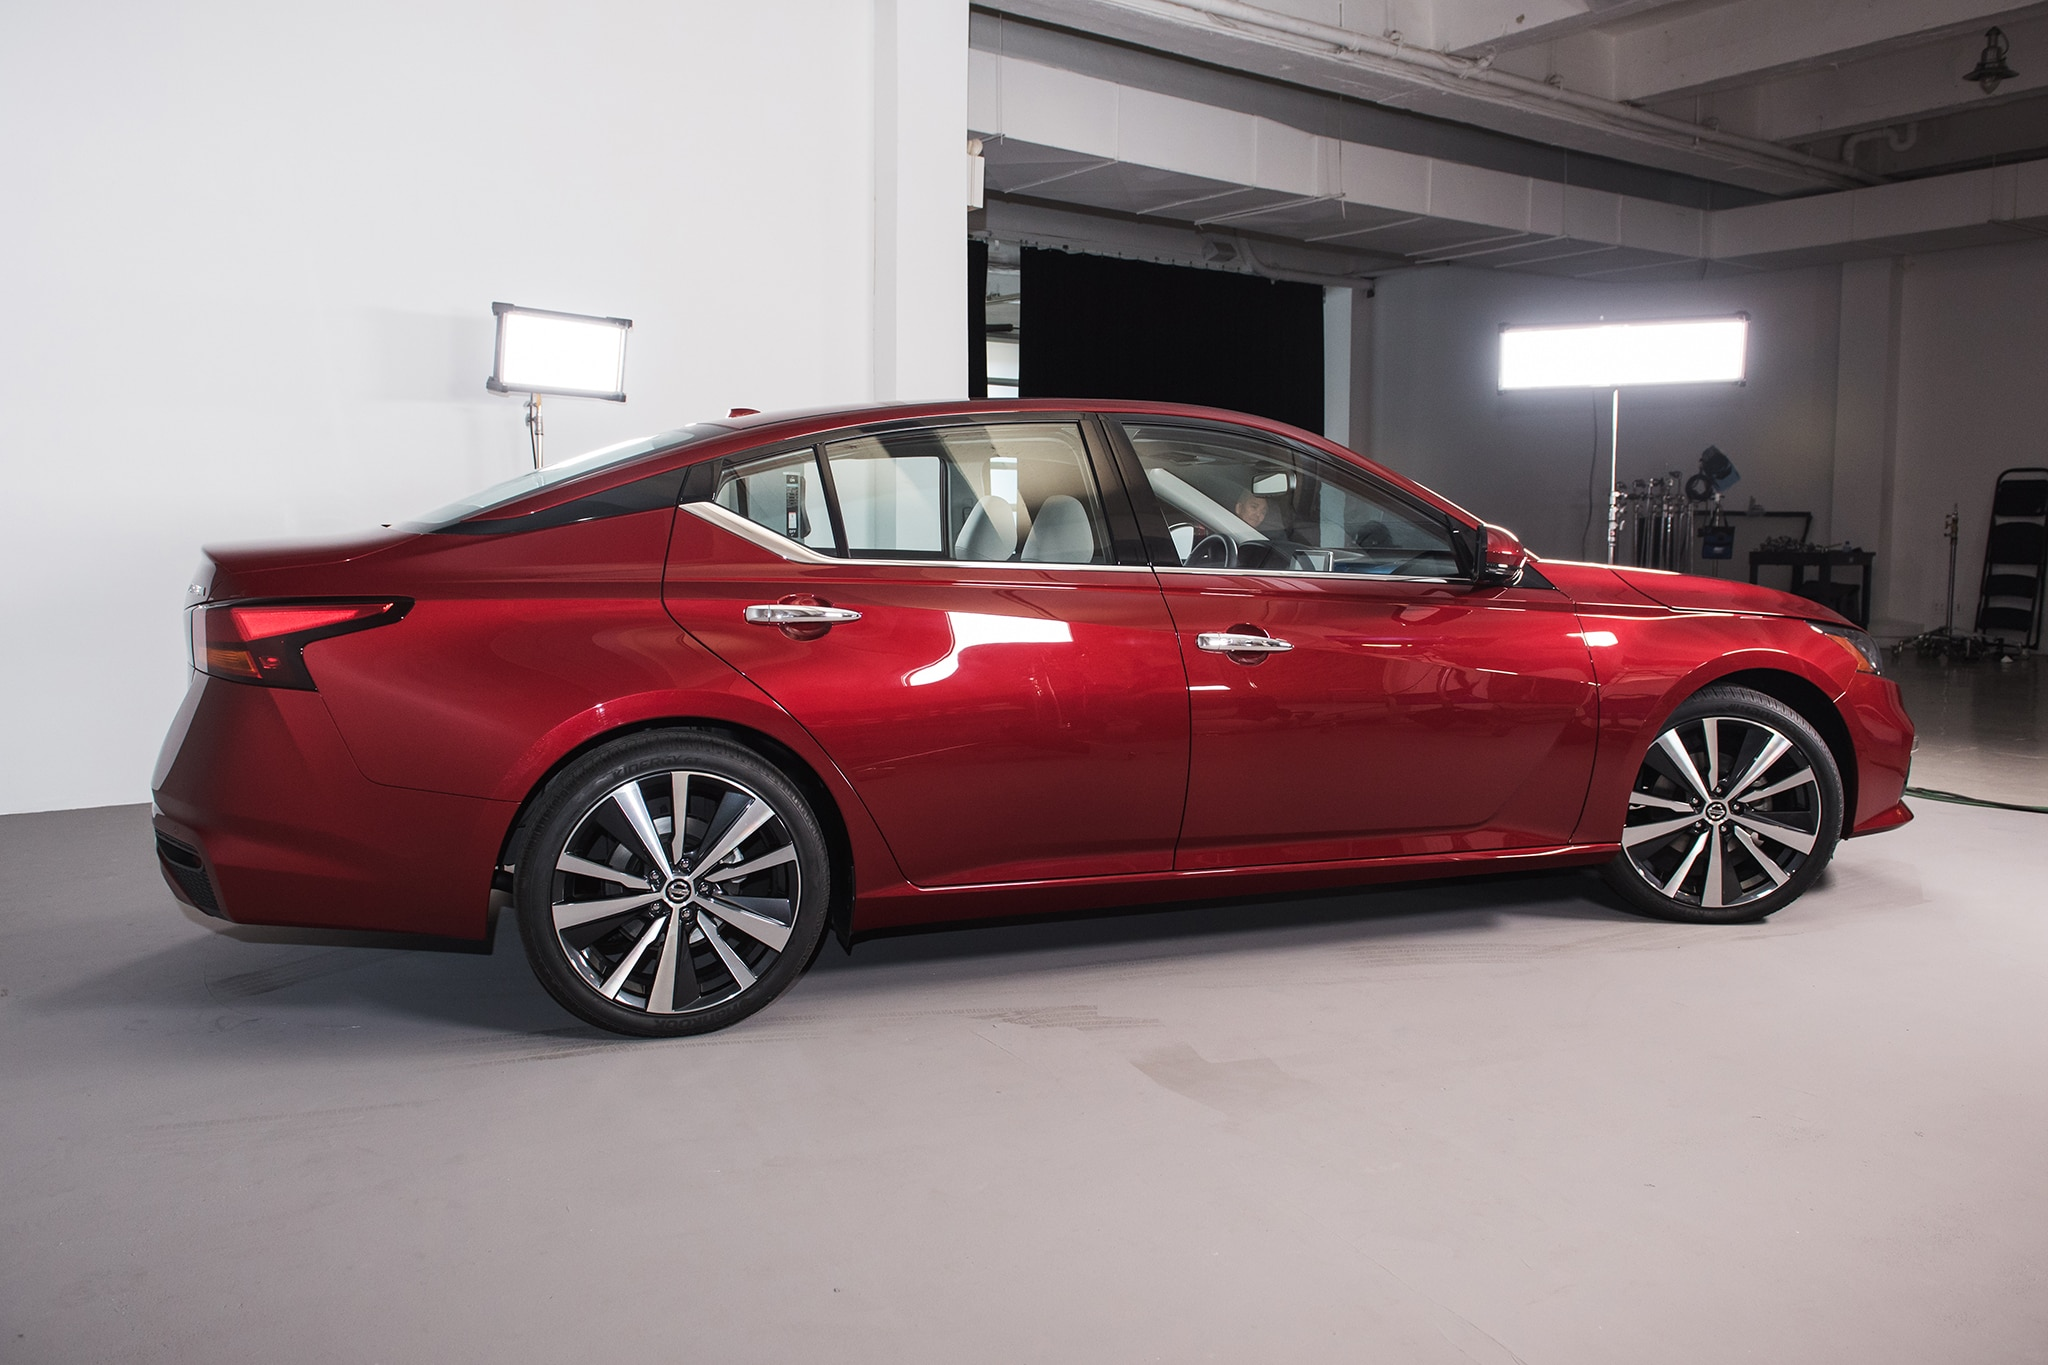 Five Cool Things About the 2019 Nissan Altima | Automobile ...